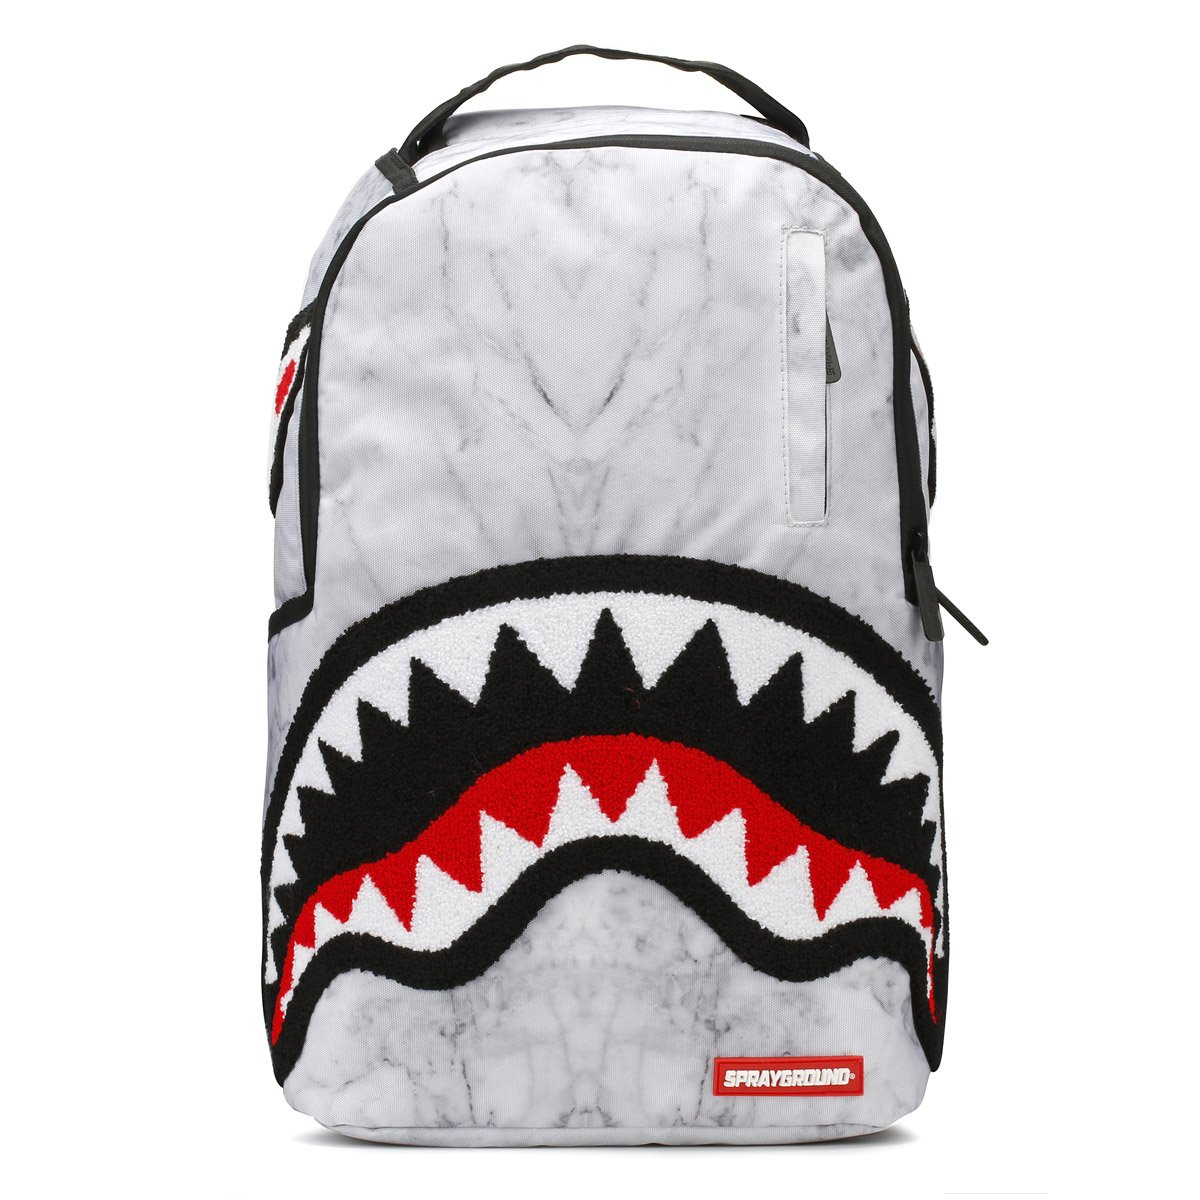 Sprayground White Marble Shark DLX Backpack - White Marble